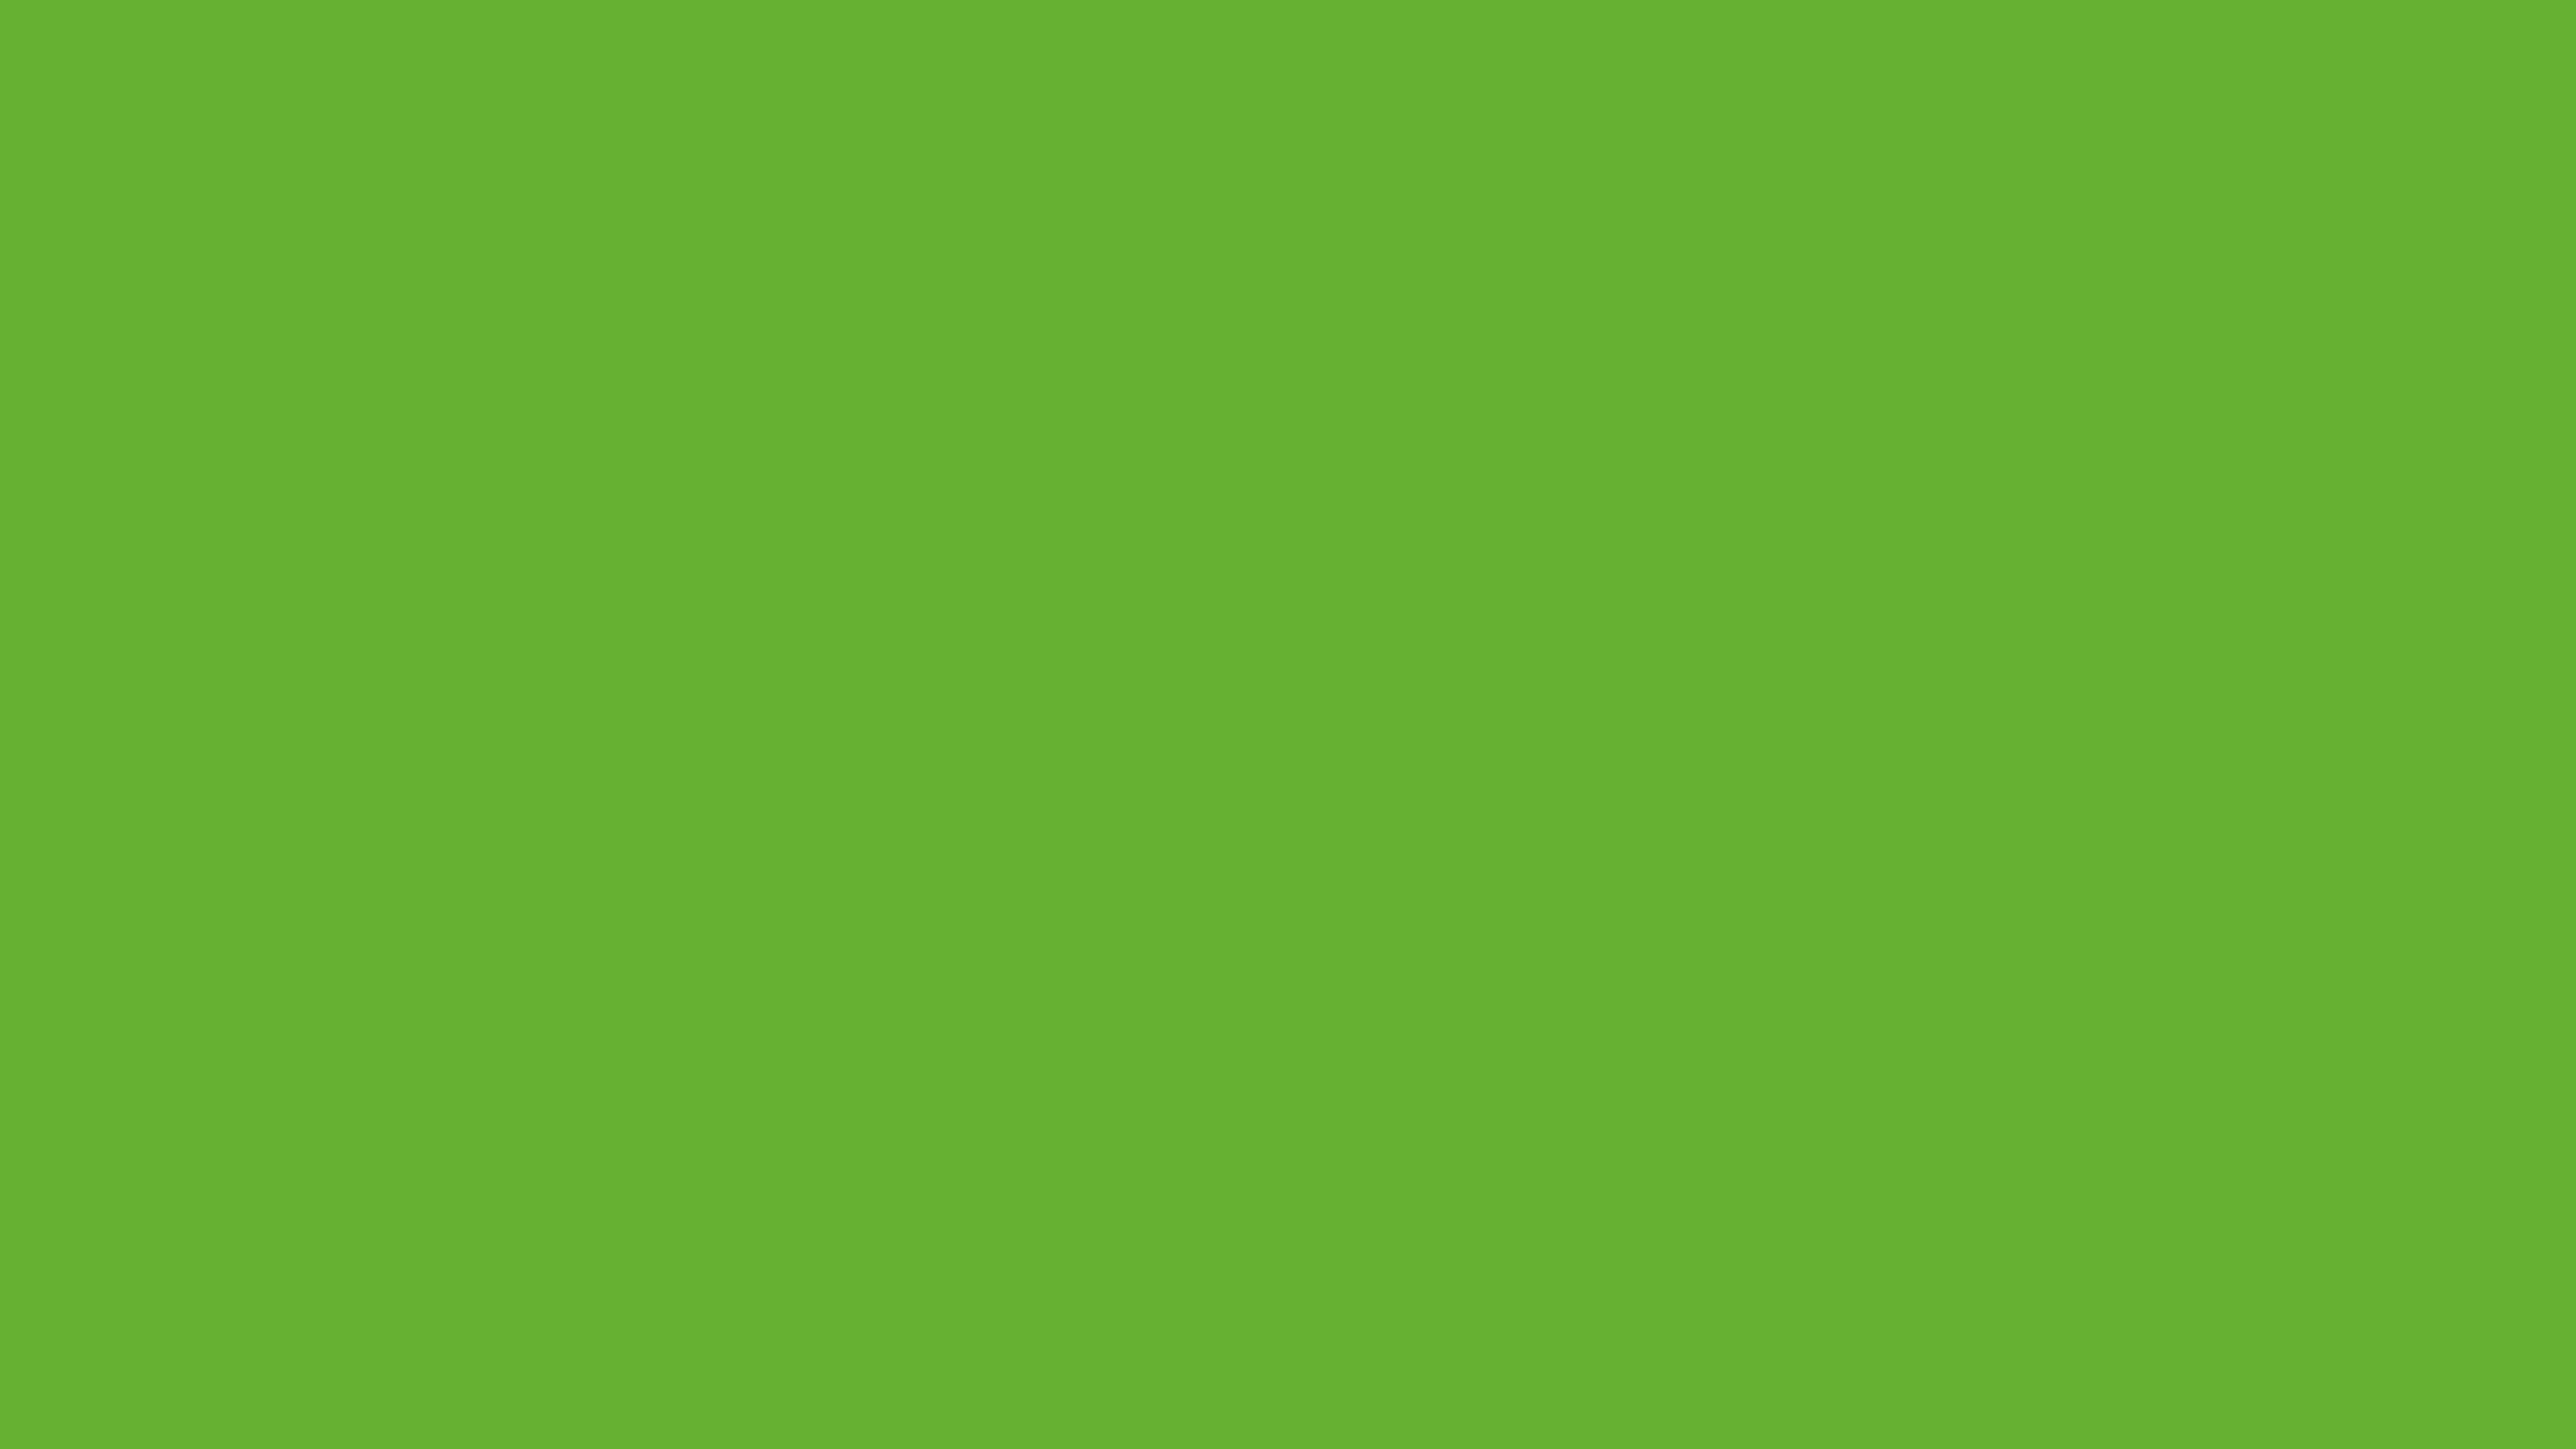 3840x2160 Green RYB Solid Color Background